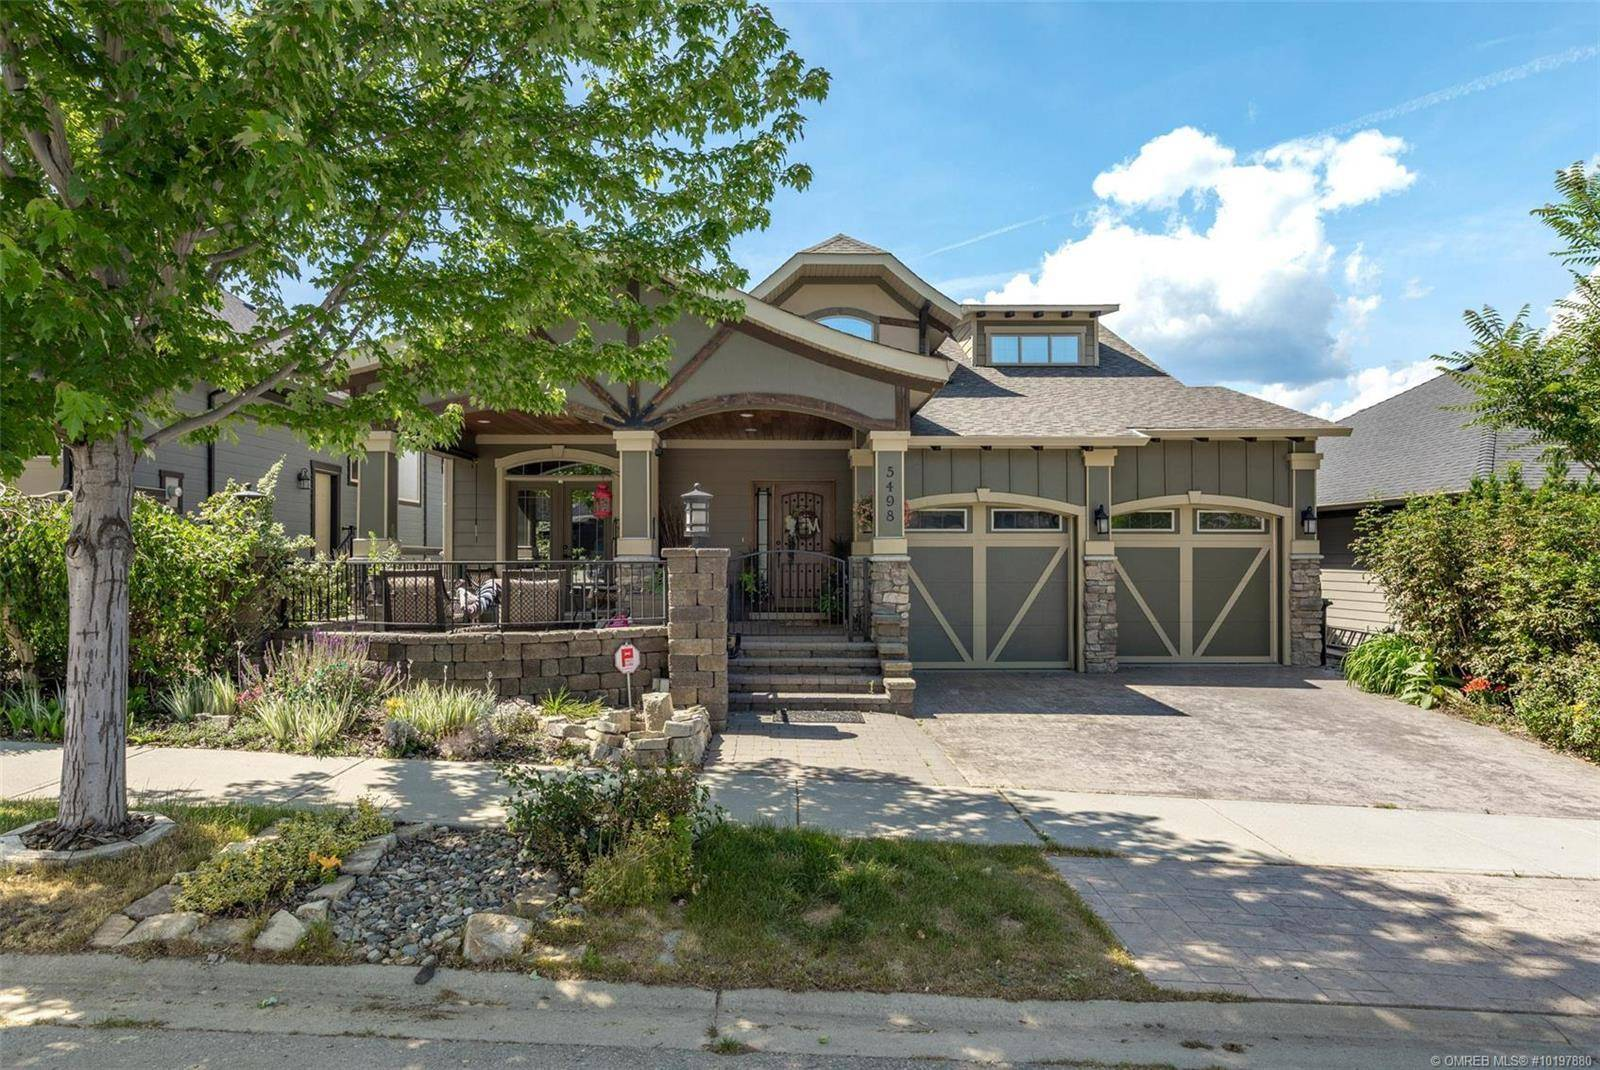 House for sale at 5498 Mountainside Dr Kelowna British Columbia - MLS: 10197880